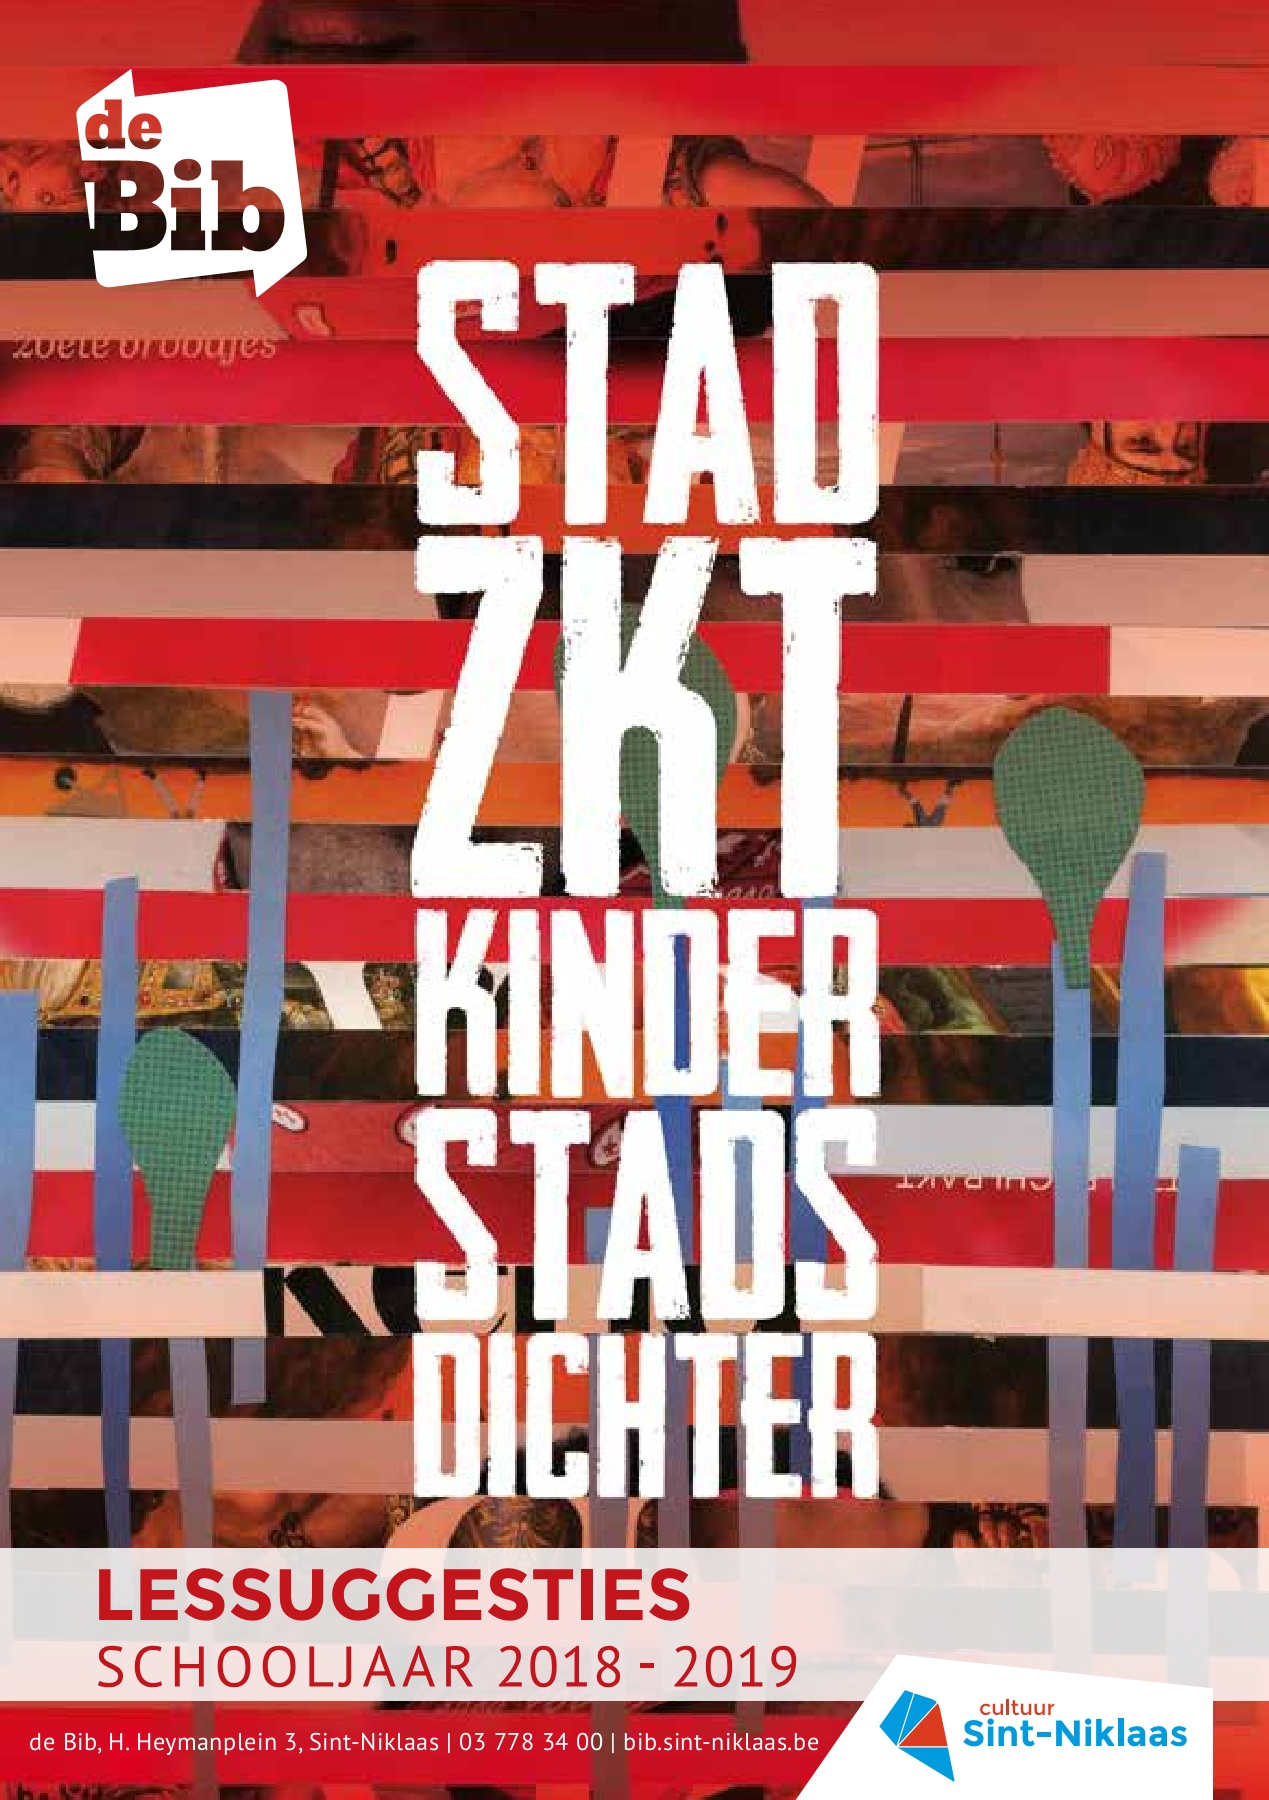 Lessuggesties Kinderstadsdichter2019 Pages 1 14 Text